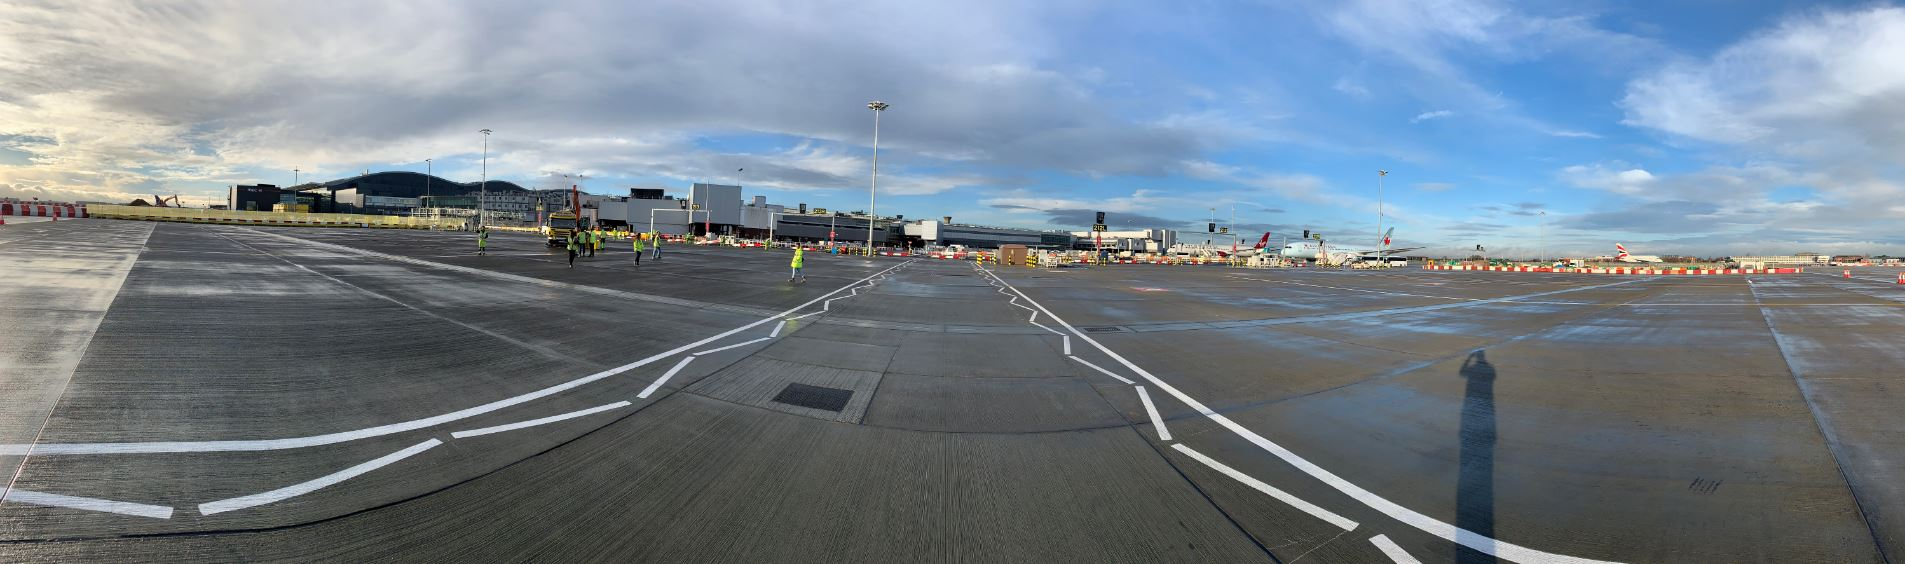 Heathrow t1 fin puntos estacionamiento